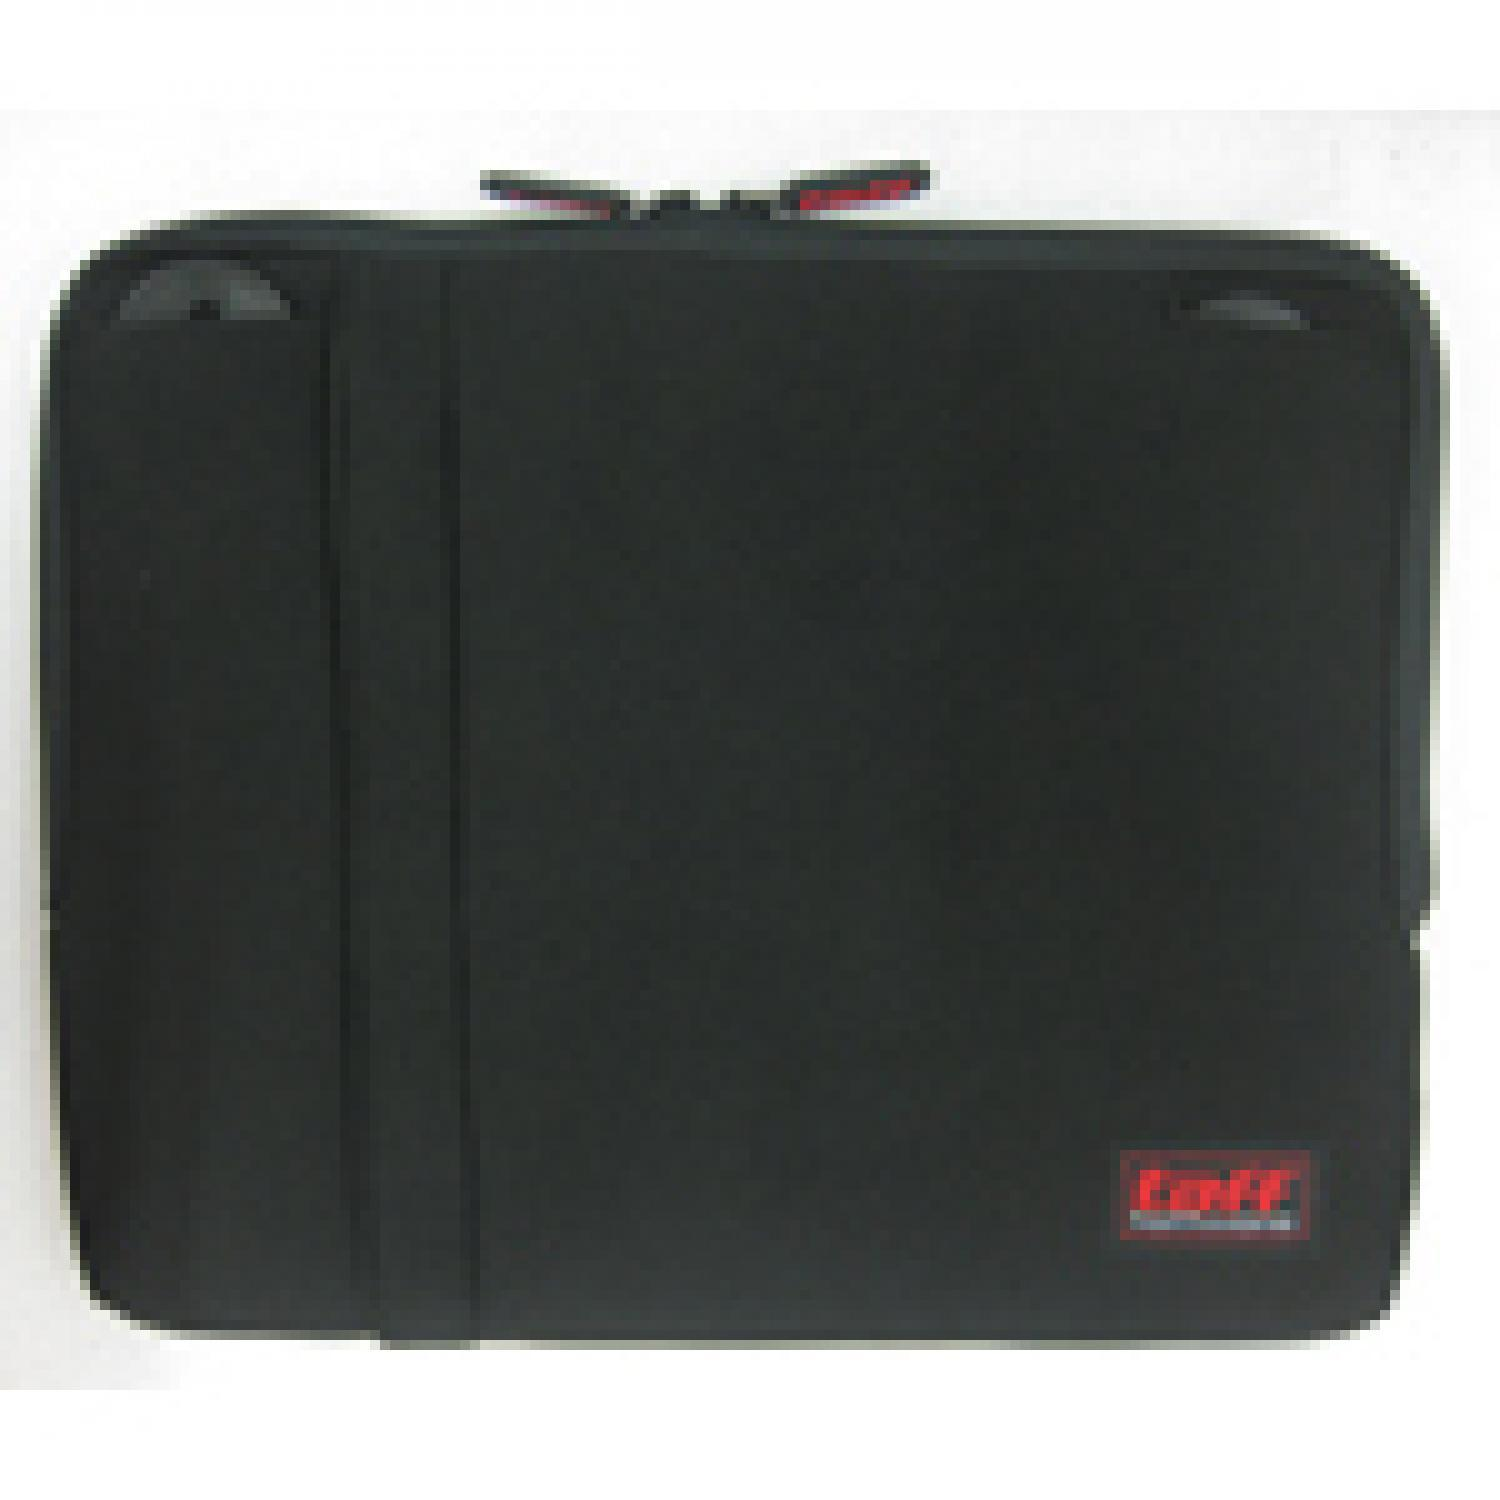 Taffware LITE Softcase - Size Netbook 10